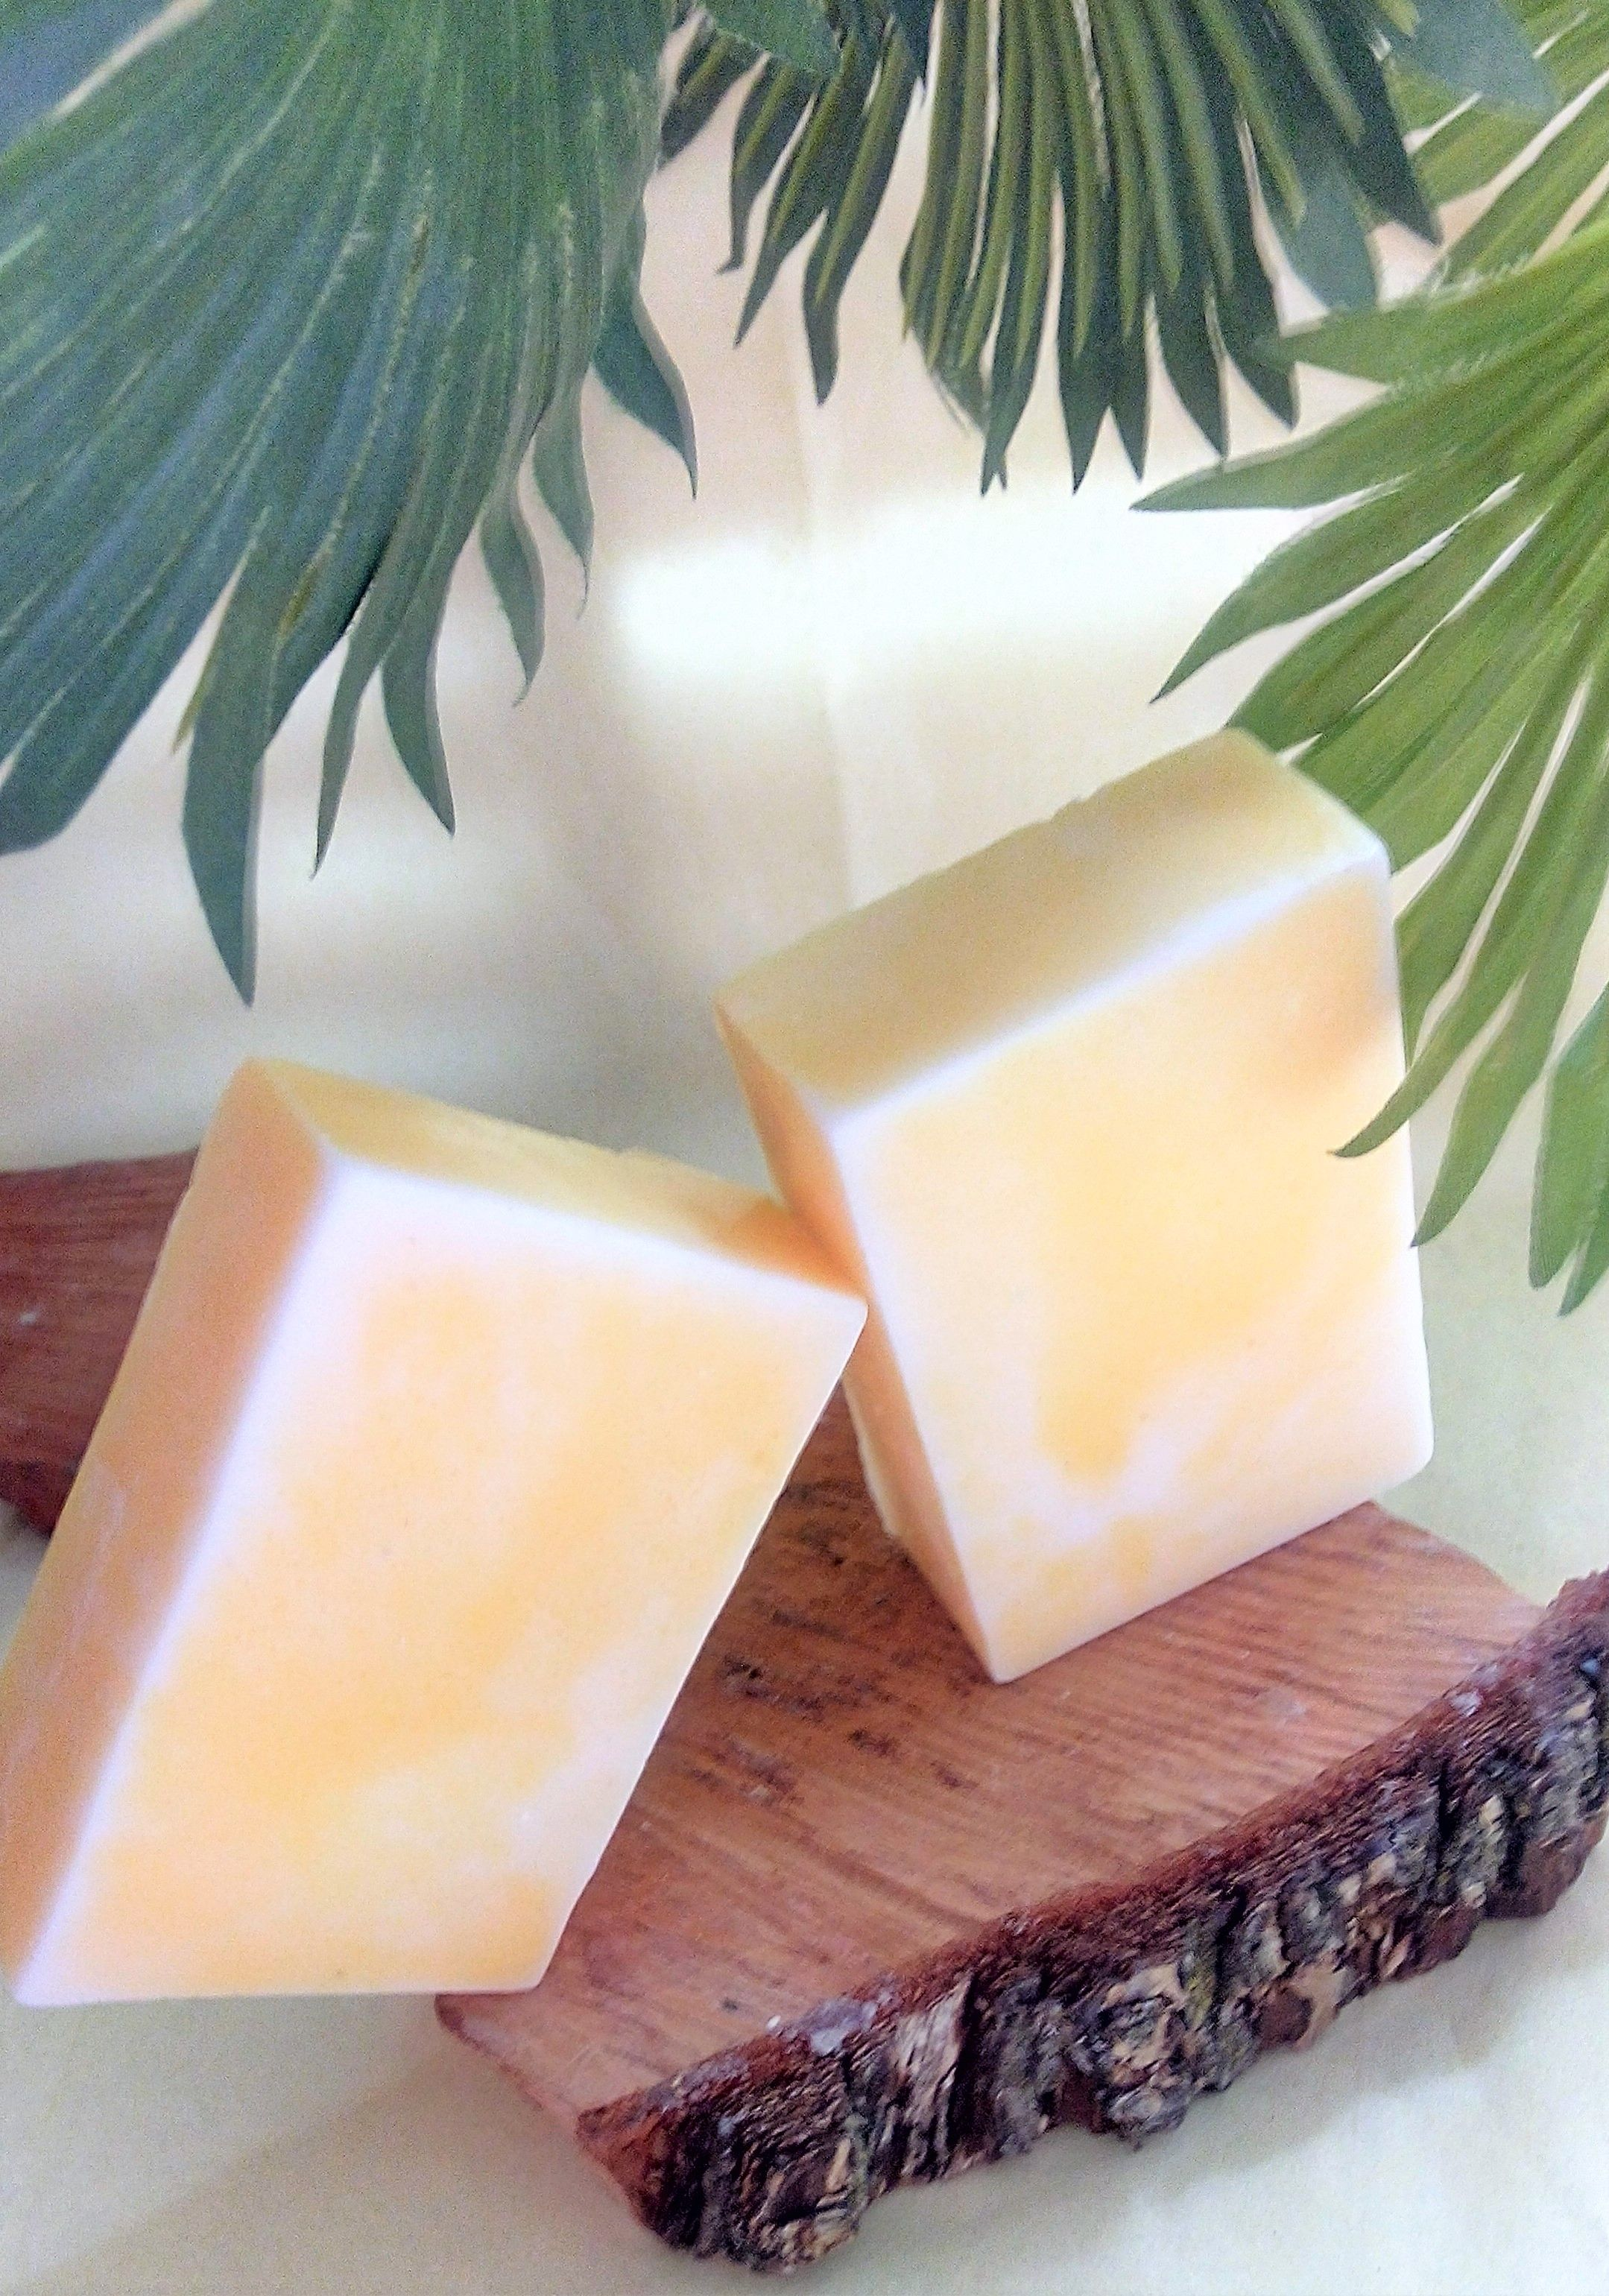 Bath & Body Handmade Glycerin Banana Soap